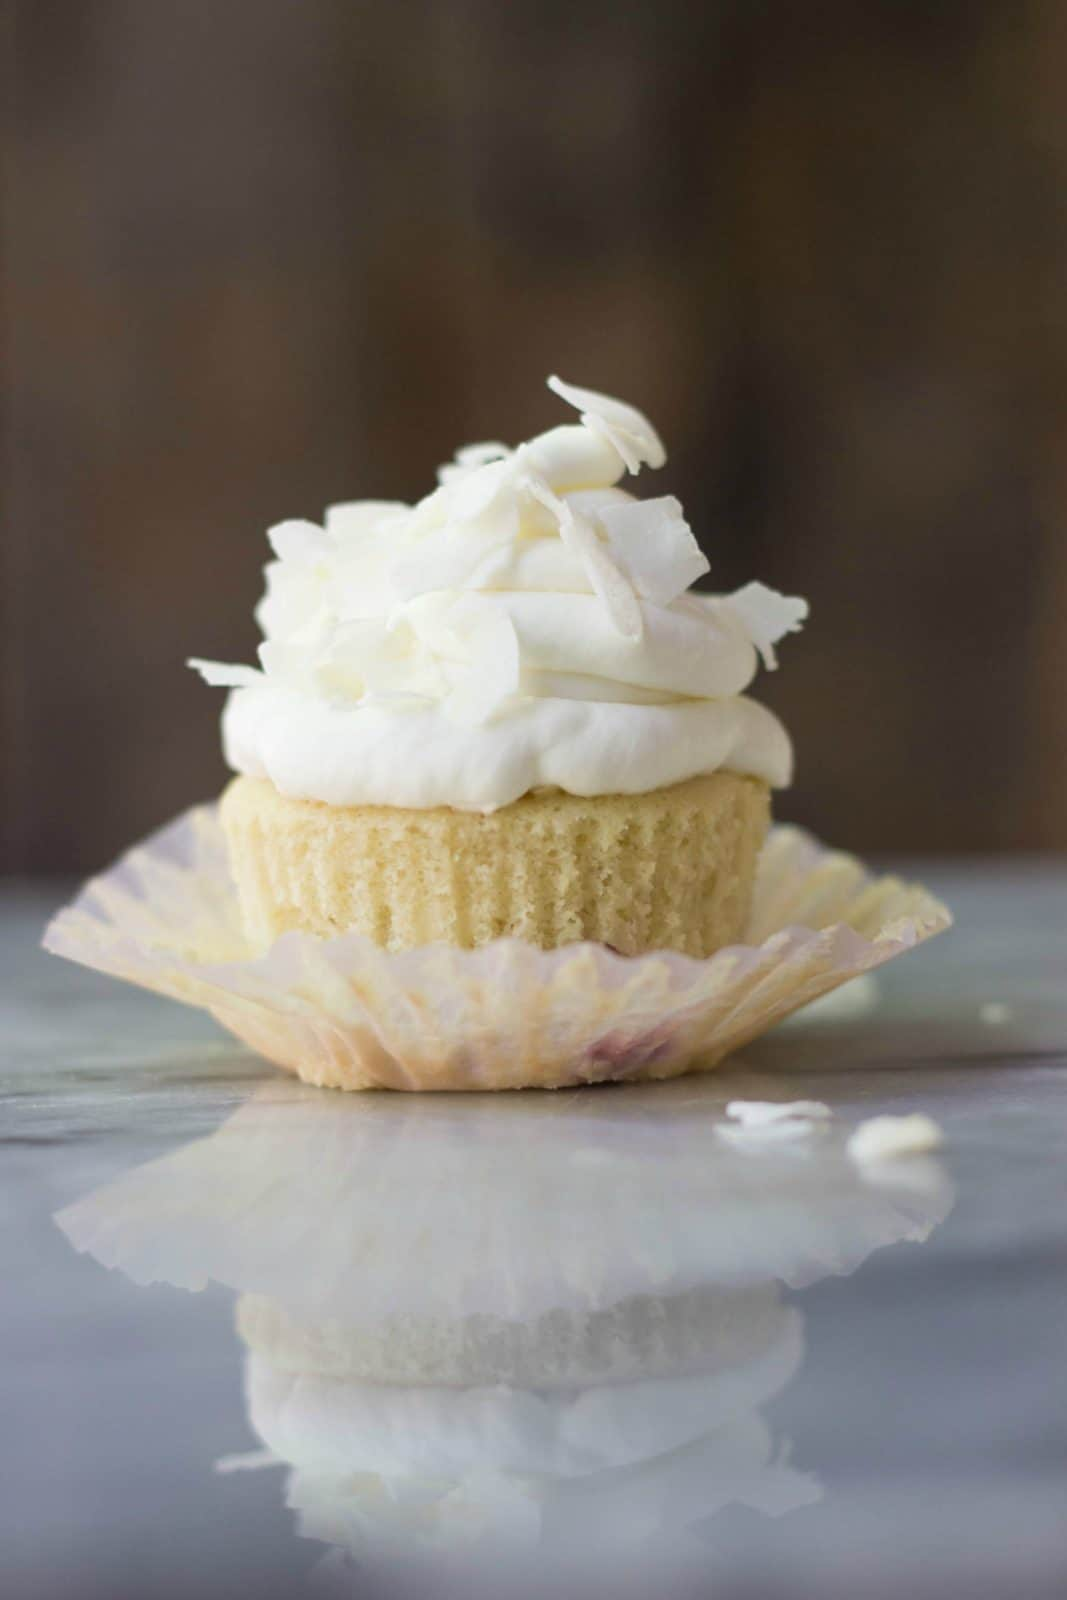 Strawberry Rhubarb Cupcakes with Coconut Milk Frosting on a plate.